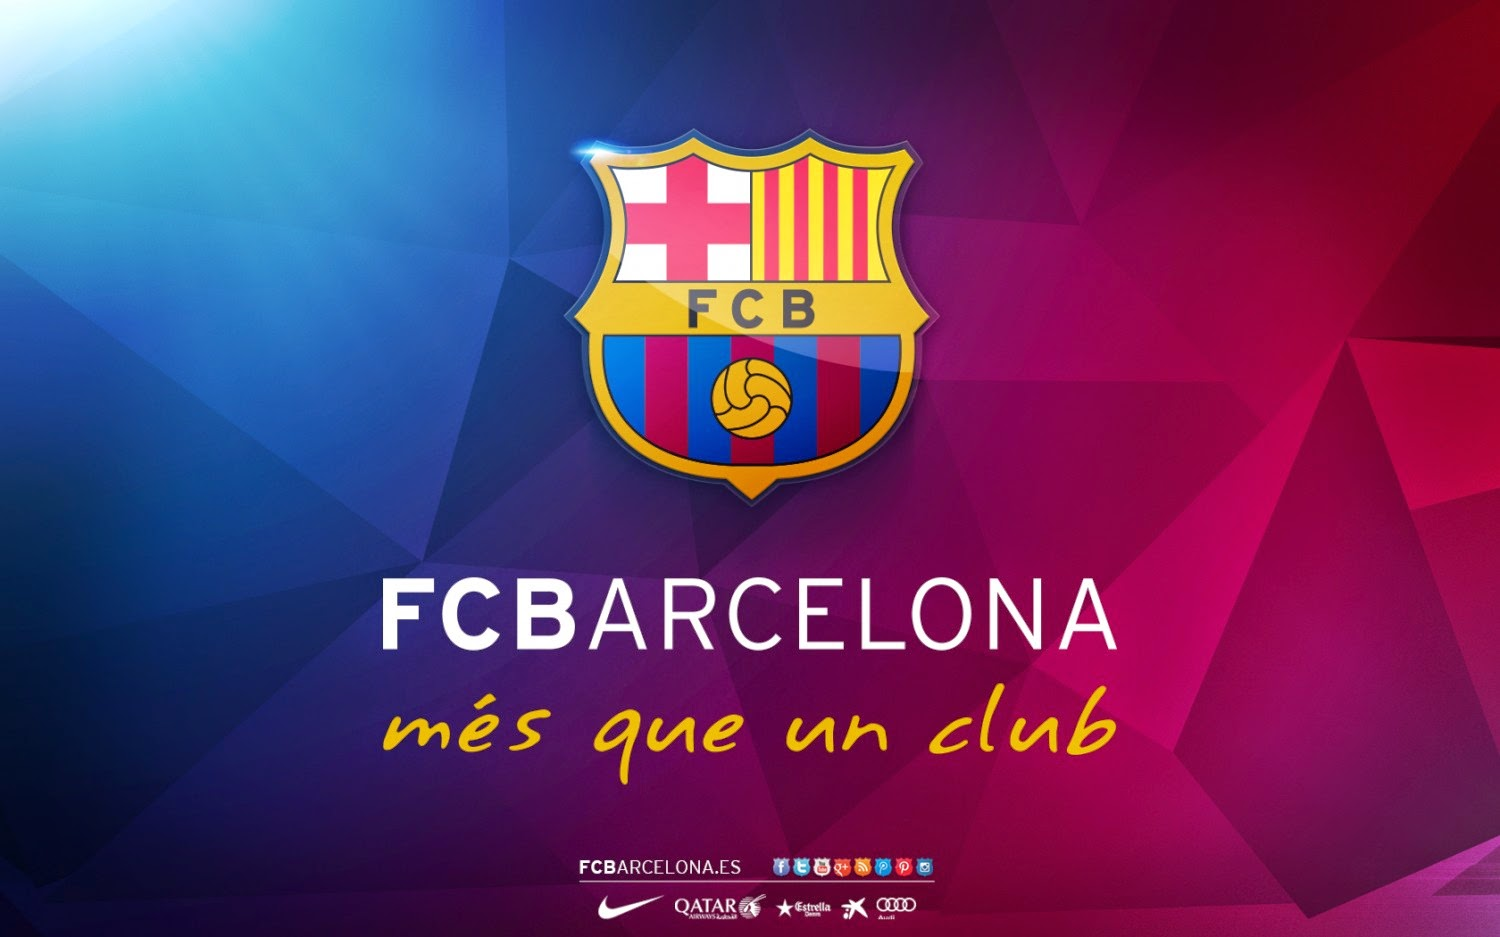 Fc Barcelona New Hd Wallpaper 2015 Besthdwallpapers2